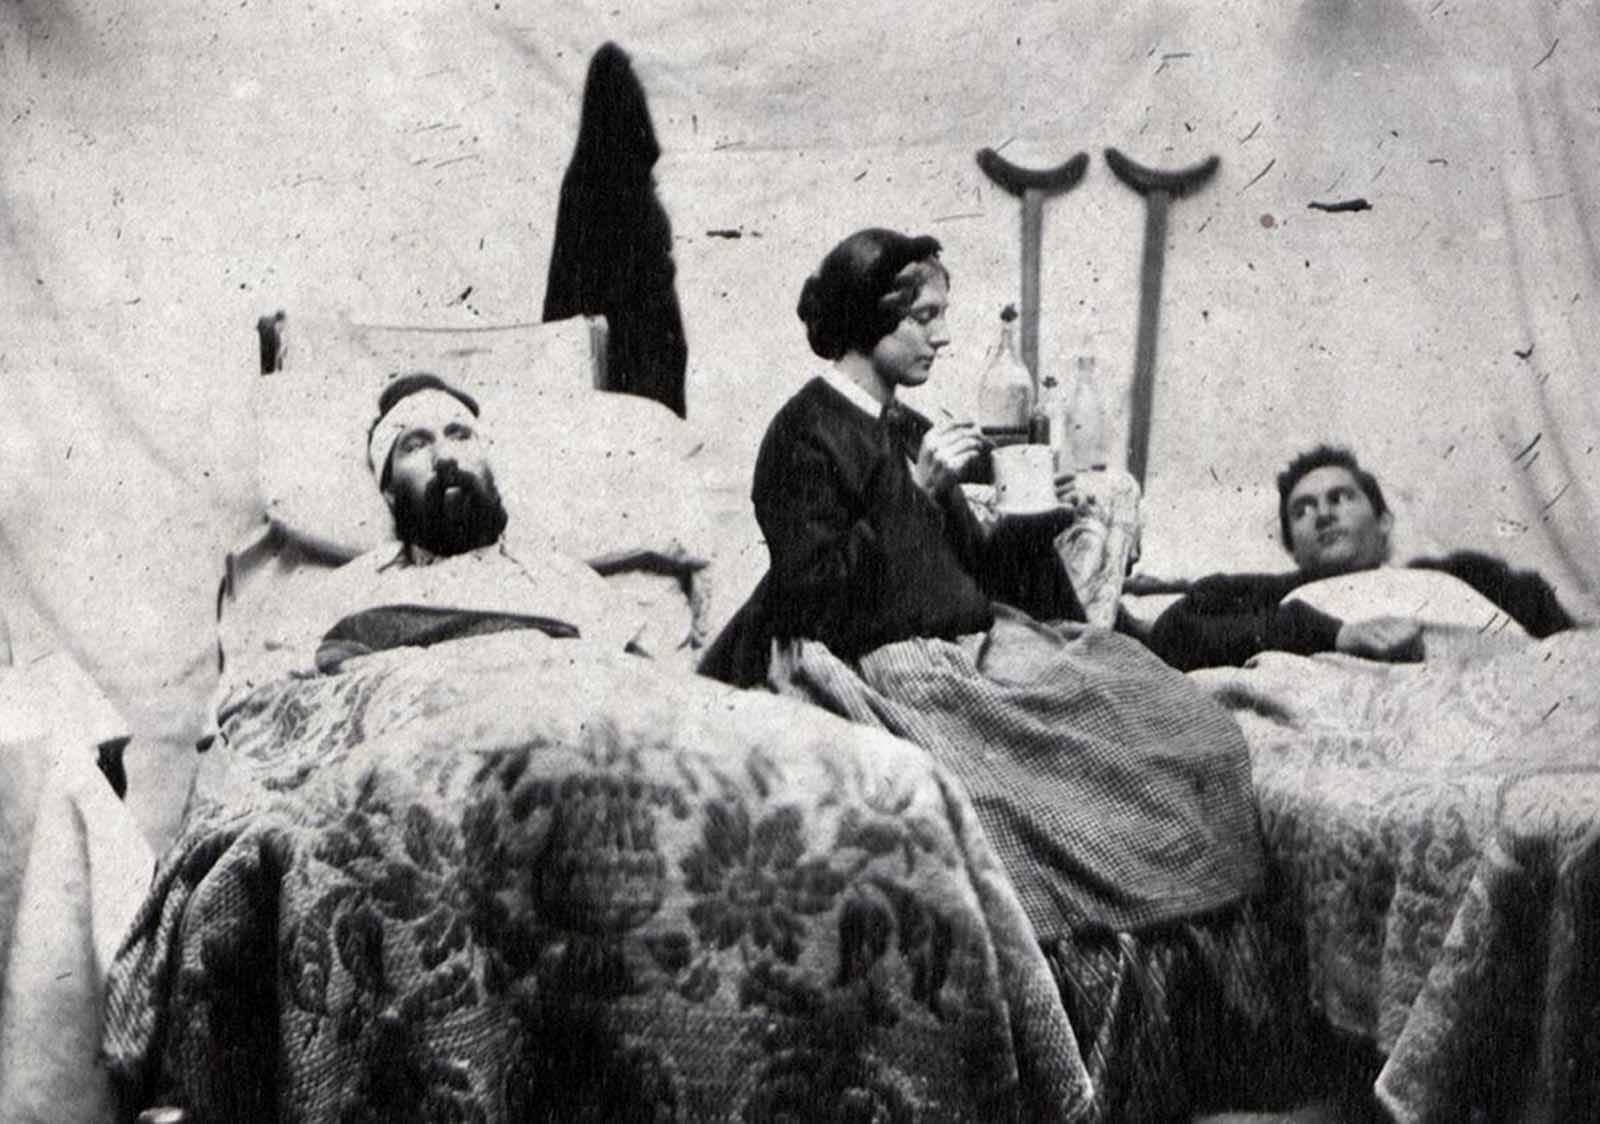 Nurse Anne Bell tending to wounded soldiers in a Union hospital, ca. 1863.